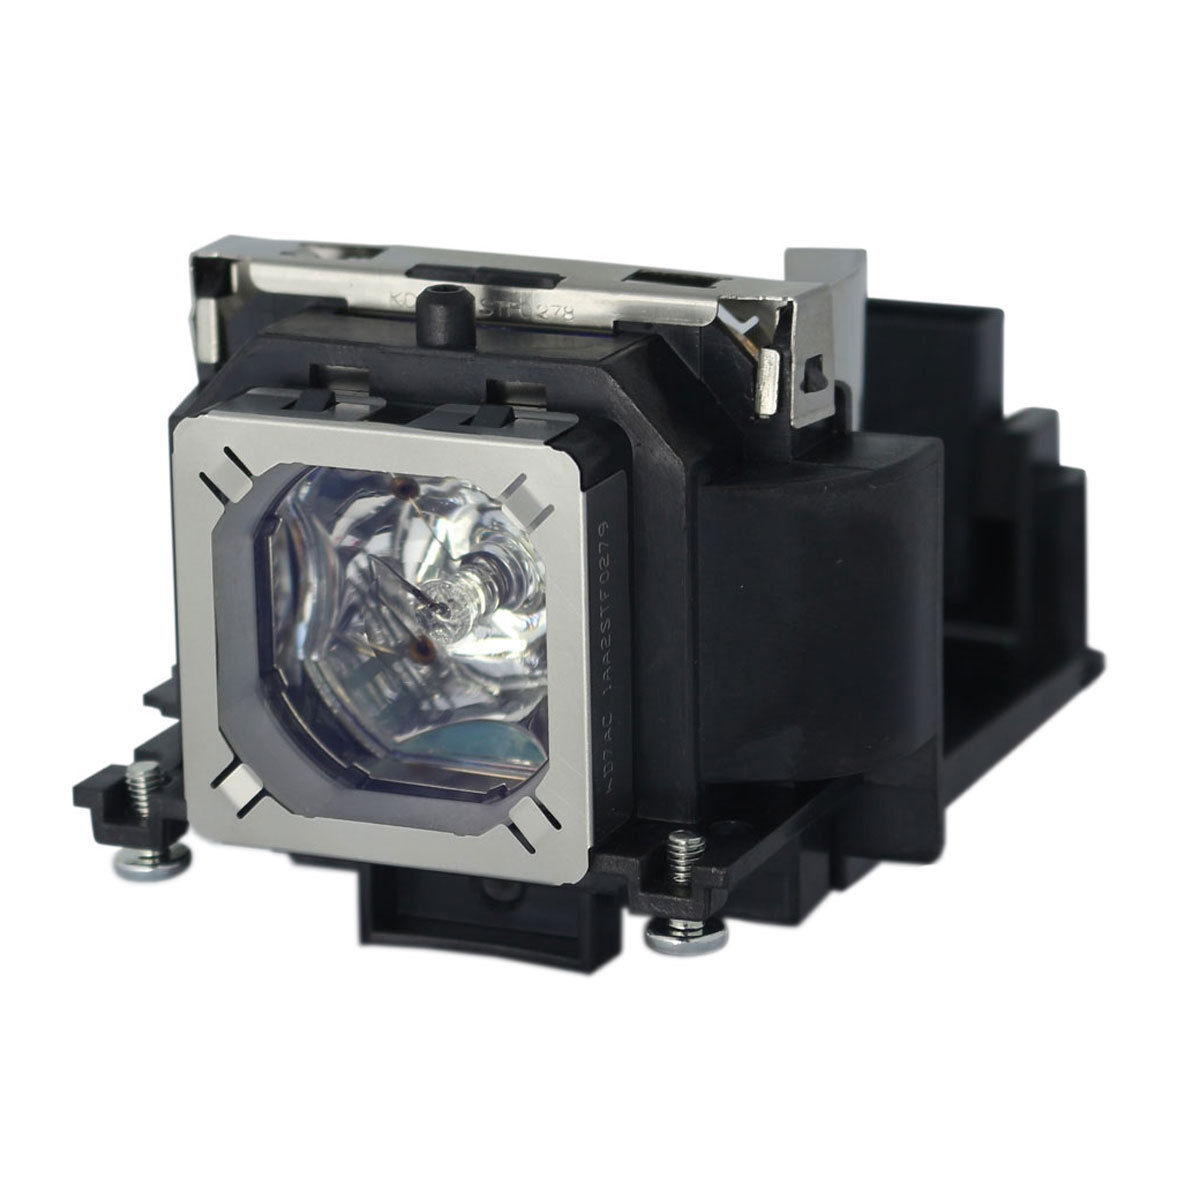 Projector Lamp Bulb DT00401 DT-00401 for HITACHI CP-S225 CP-S225A CP-S225W CP-S317W CP-S318 CP-X328 ED-S3170A With Housing compatible projector lamp for hitachi dt01151 cp rx79 cp rx82 cp rx93 ed x26